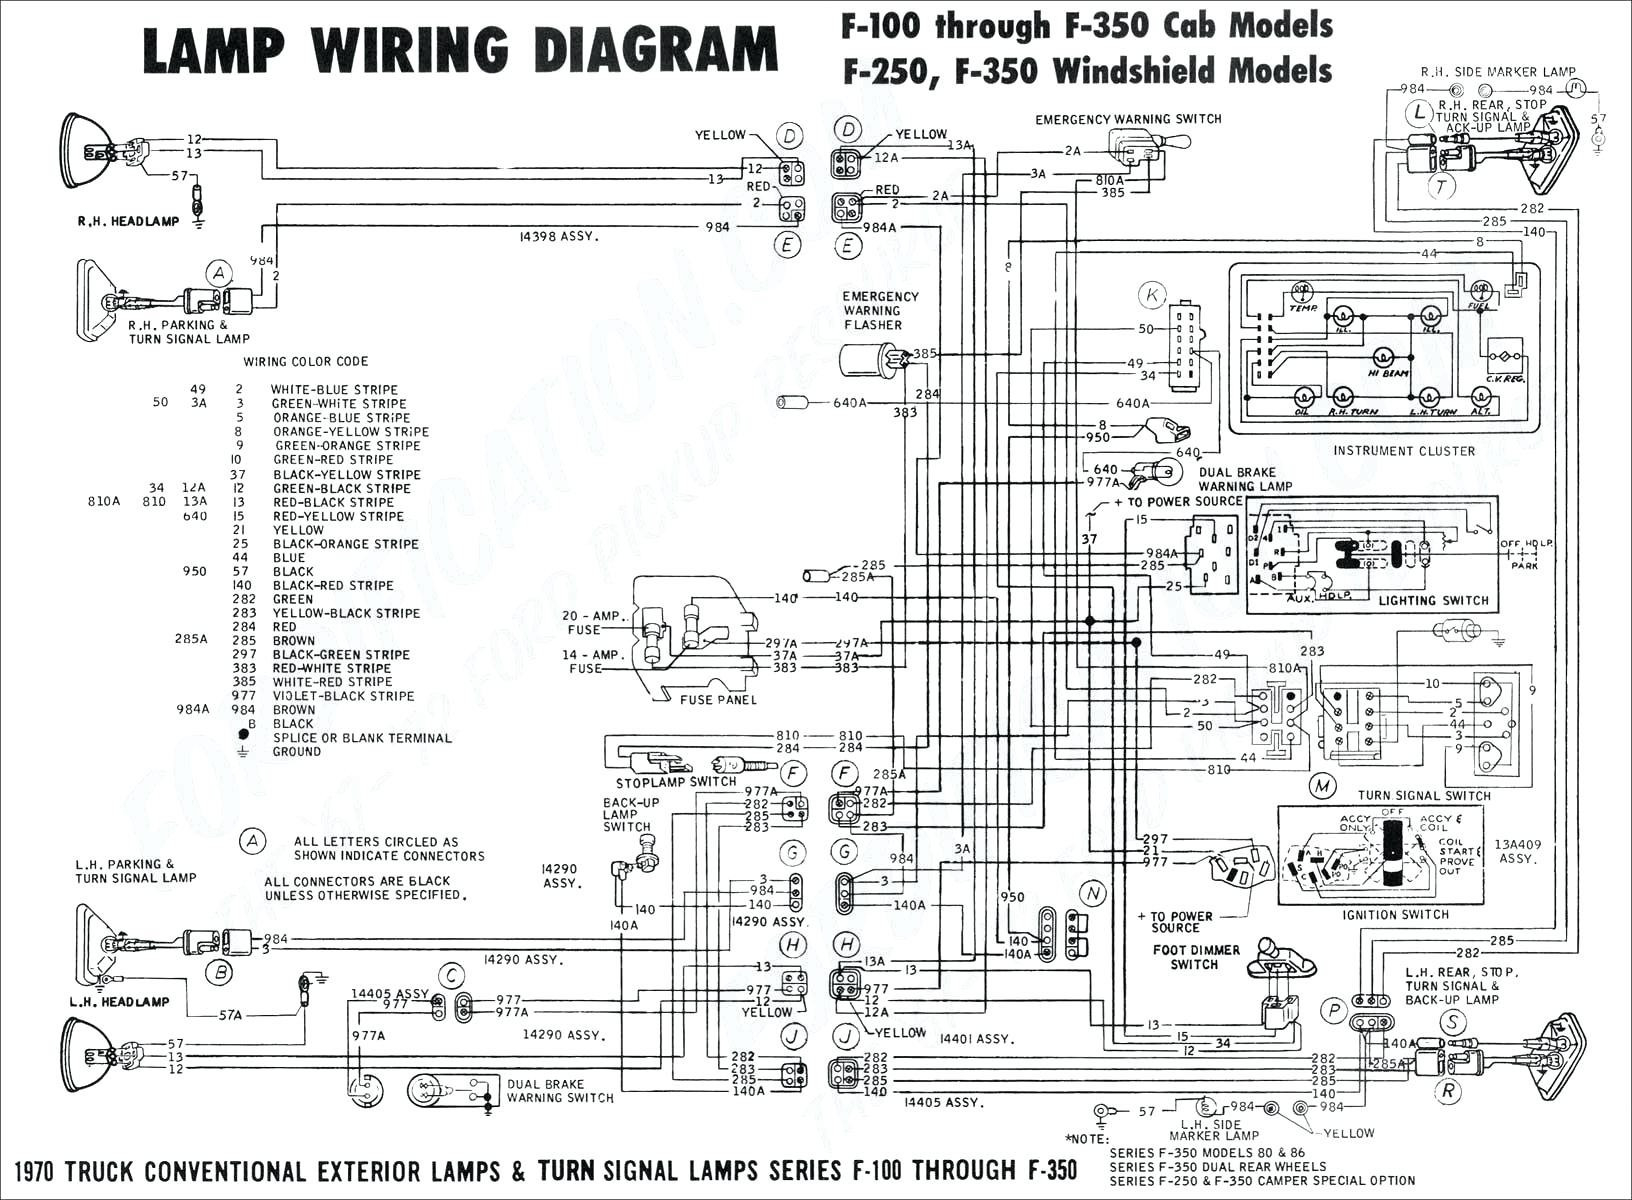 1990 Ford Wiring Diagram Lights - Wiring Diagram Mega Backup Lights Wiring Diagram Ford F on 97 f150 fuse box diagram, 1997 ford f150 oil sending unit, 1997 ford f150 heater blend door, 1993 dodge d250 wiring diagram, 1997 ford f150 drive shaft, 97 f150 wiring diagram, 1997 ford f150 tires, 1997 ford f150 engine swap, 2014 ford f150 wiring diagram, honda accord wiring diagram, 97 ford f-150 wiring diagram, 1997 ford f150 fuel pump fuse, 1997 ford f150 speedometer, ford f-150 wiring harness diagram, 1997 ford f150 tail light fuse, 1997 ford f150 shift solenoid, 1997 ford f150 fuse identification, 1997 ford f150 brake switch, 1997 ford f150 parts manual, 1997 ford f150 relay box,